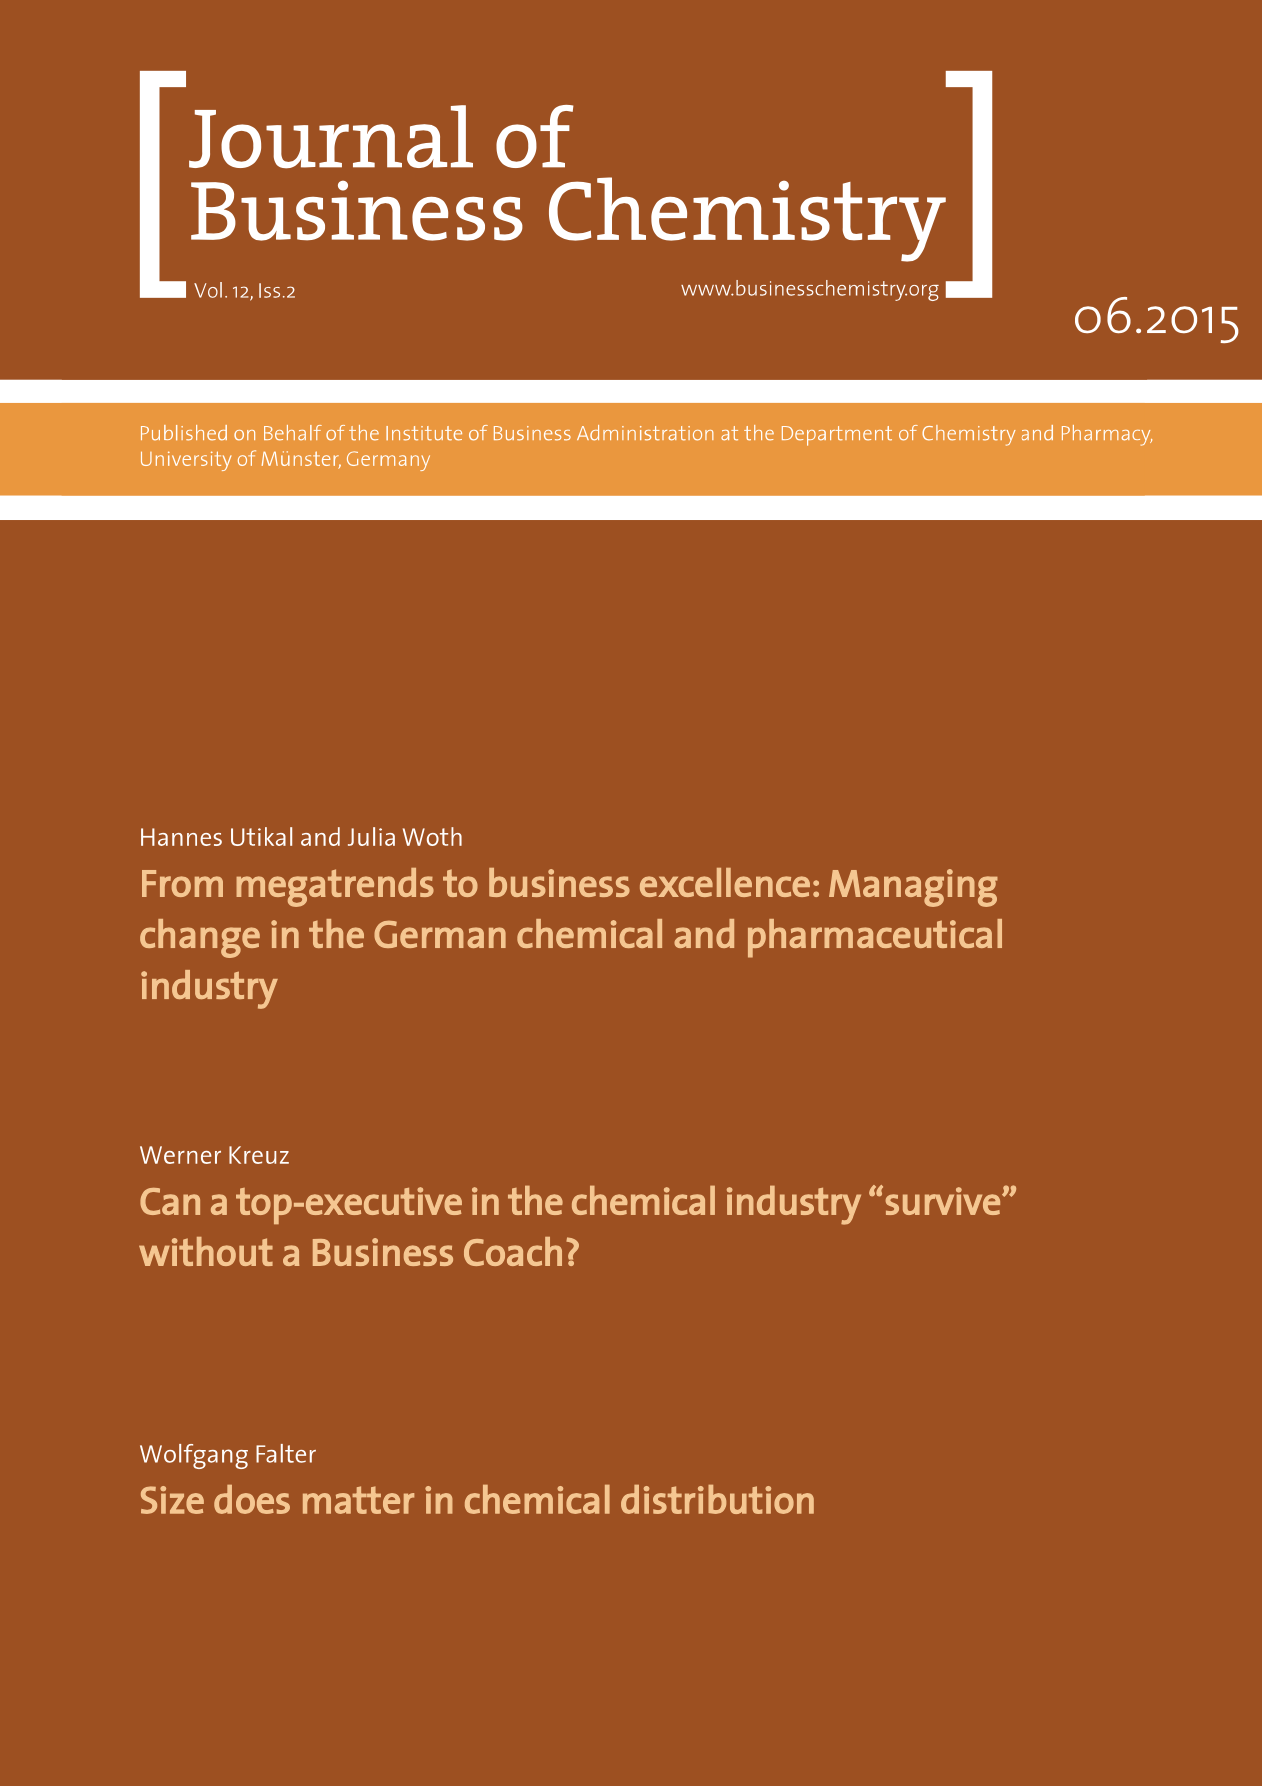 Journal of Business Chemistry June 2015